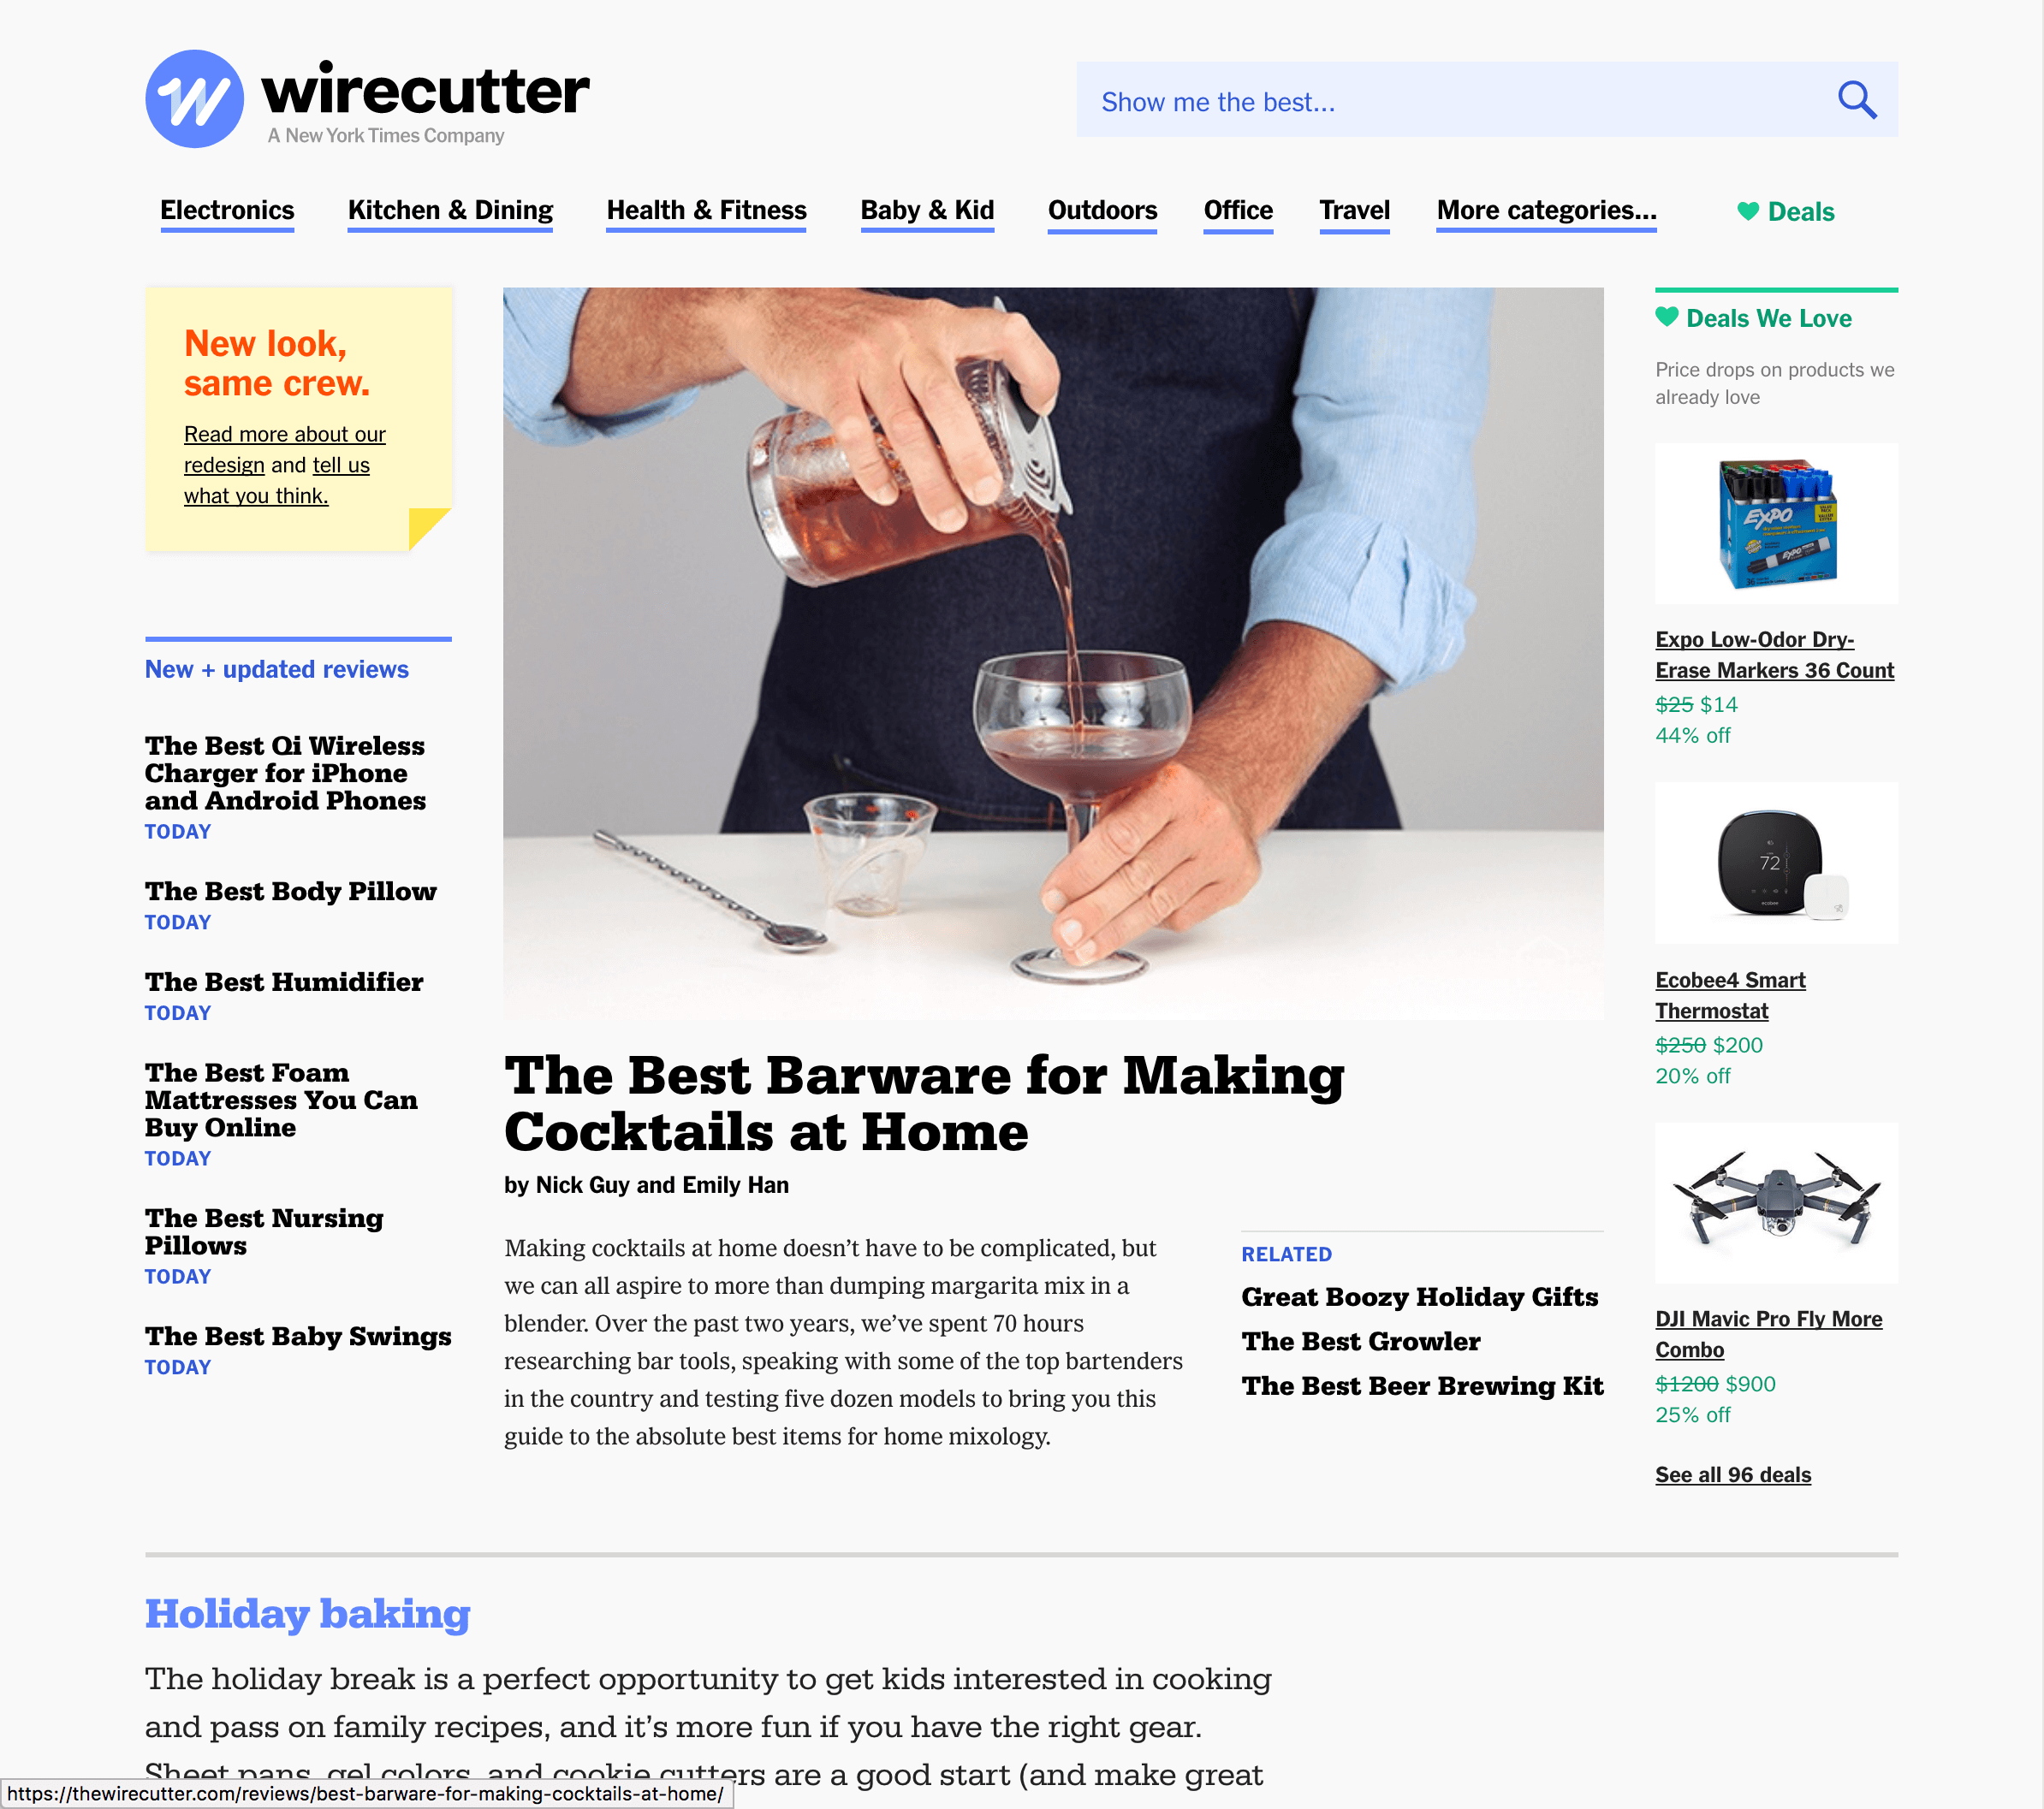 Example of a perspective effect in Wirecutter's design